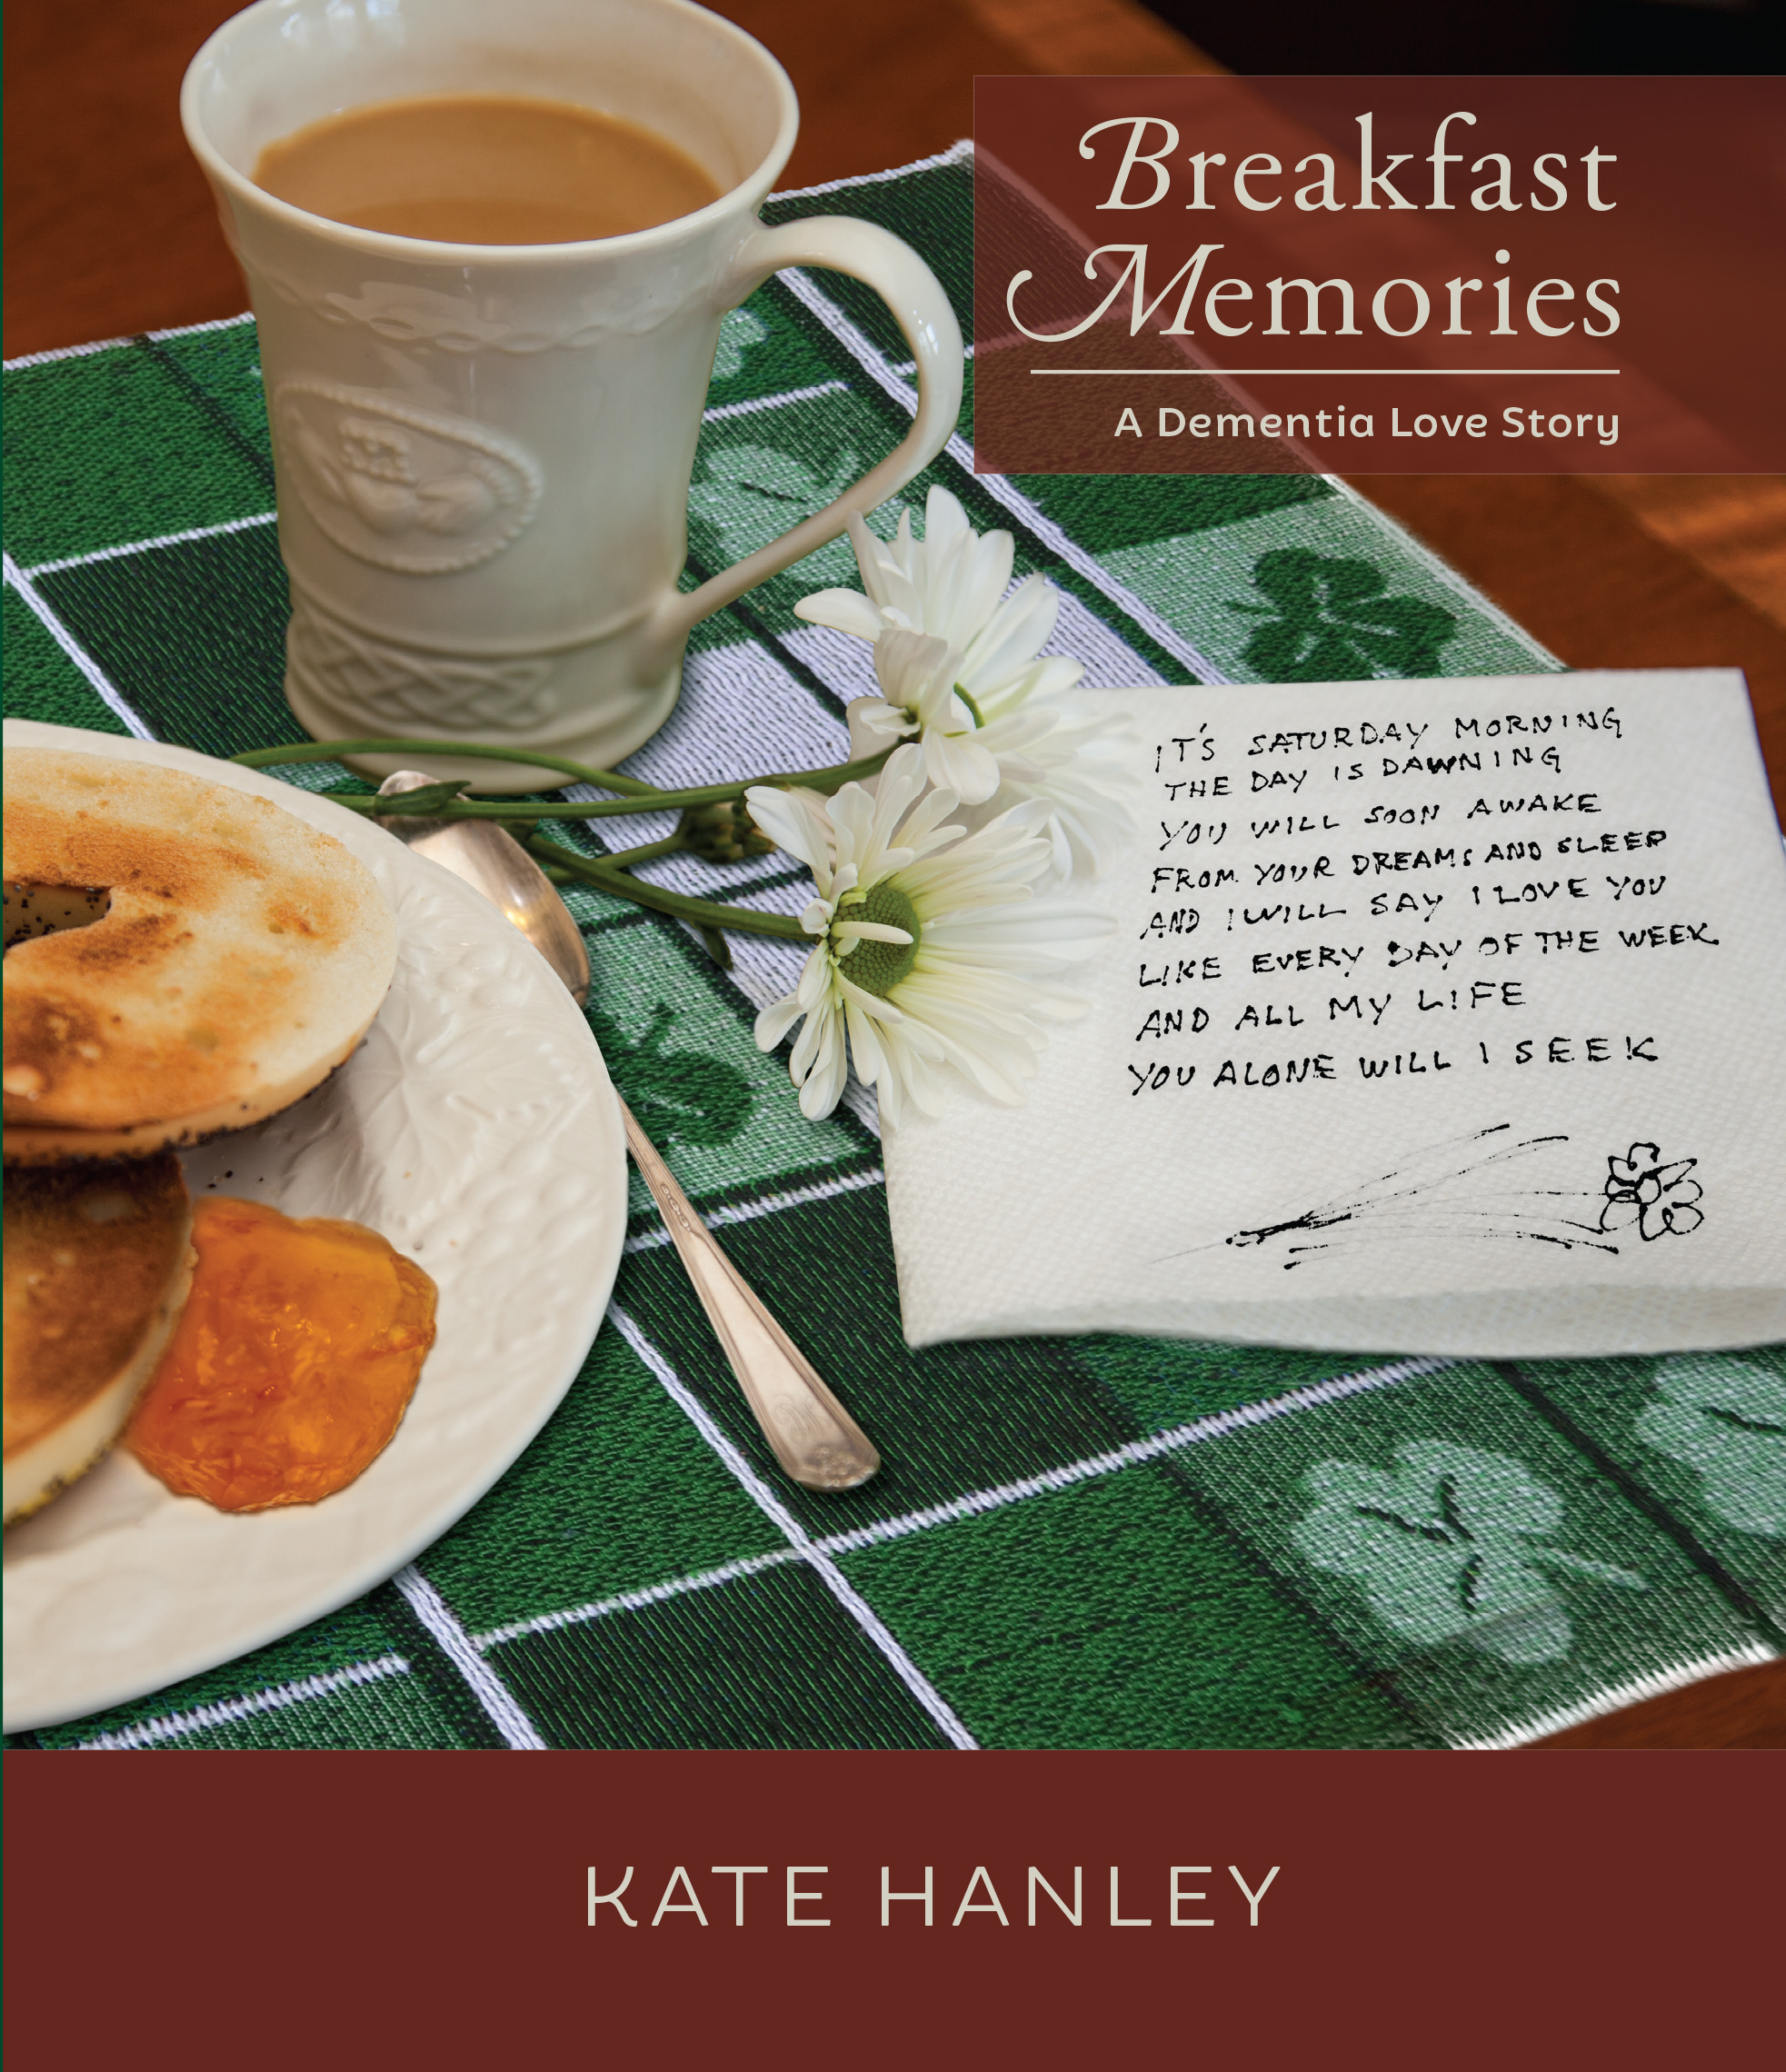 Breakfast Memories: A Dementia Love Story